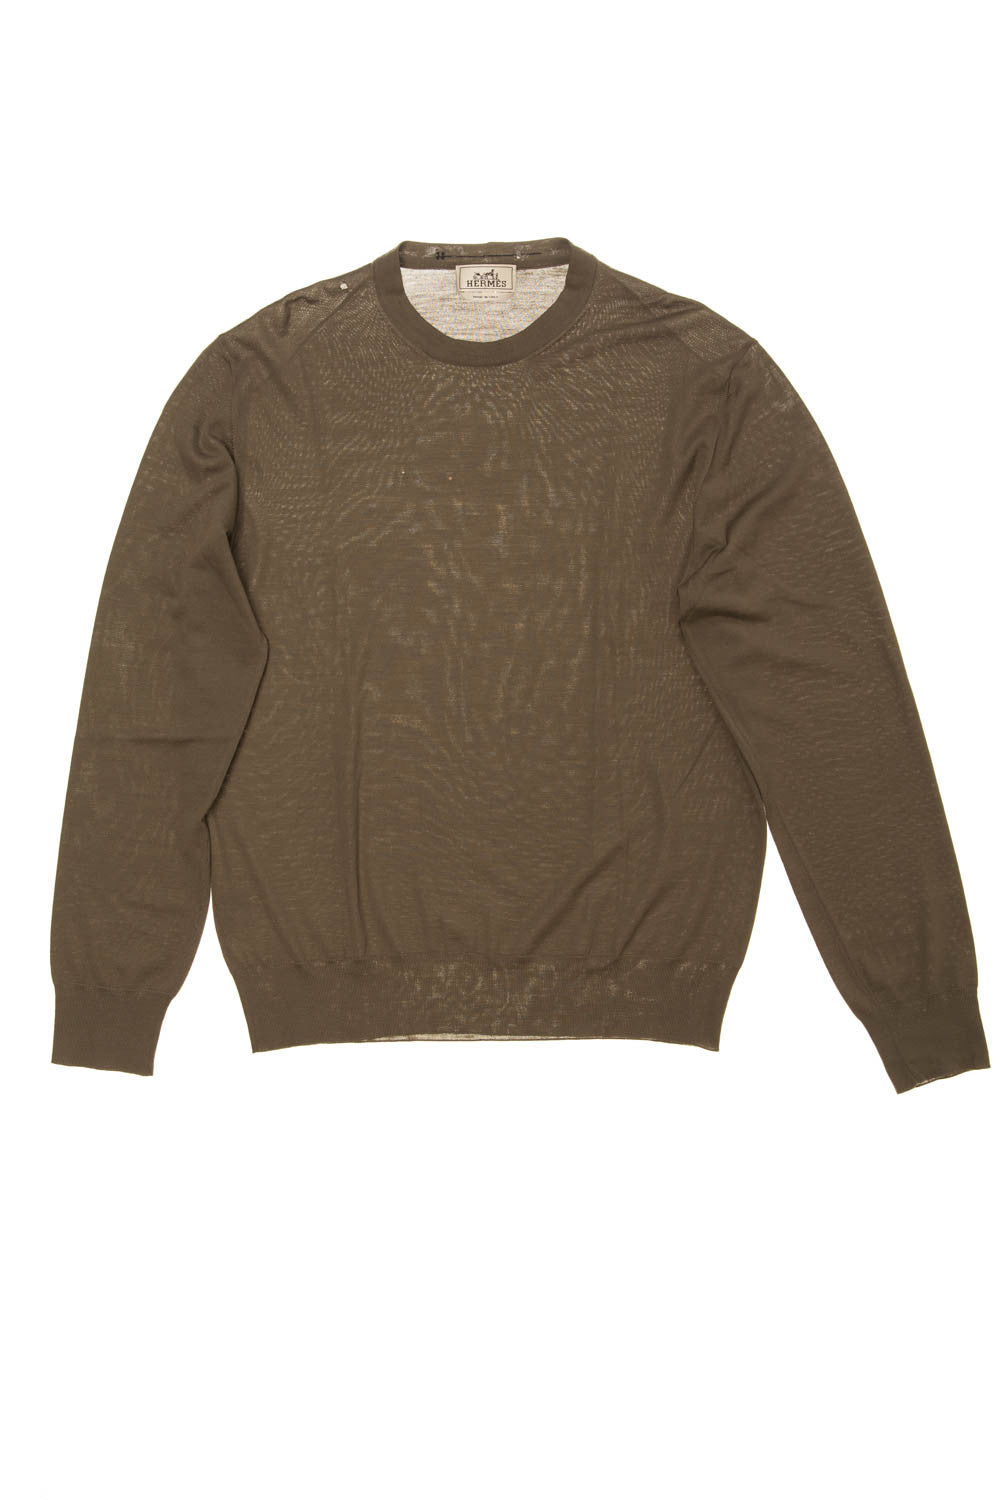 Hermes - Dark Olive Green Long Sleeve Tee As Is (Moth Eaten) - XL